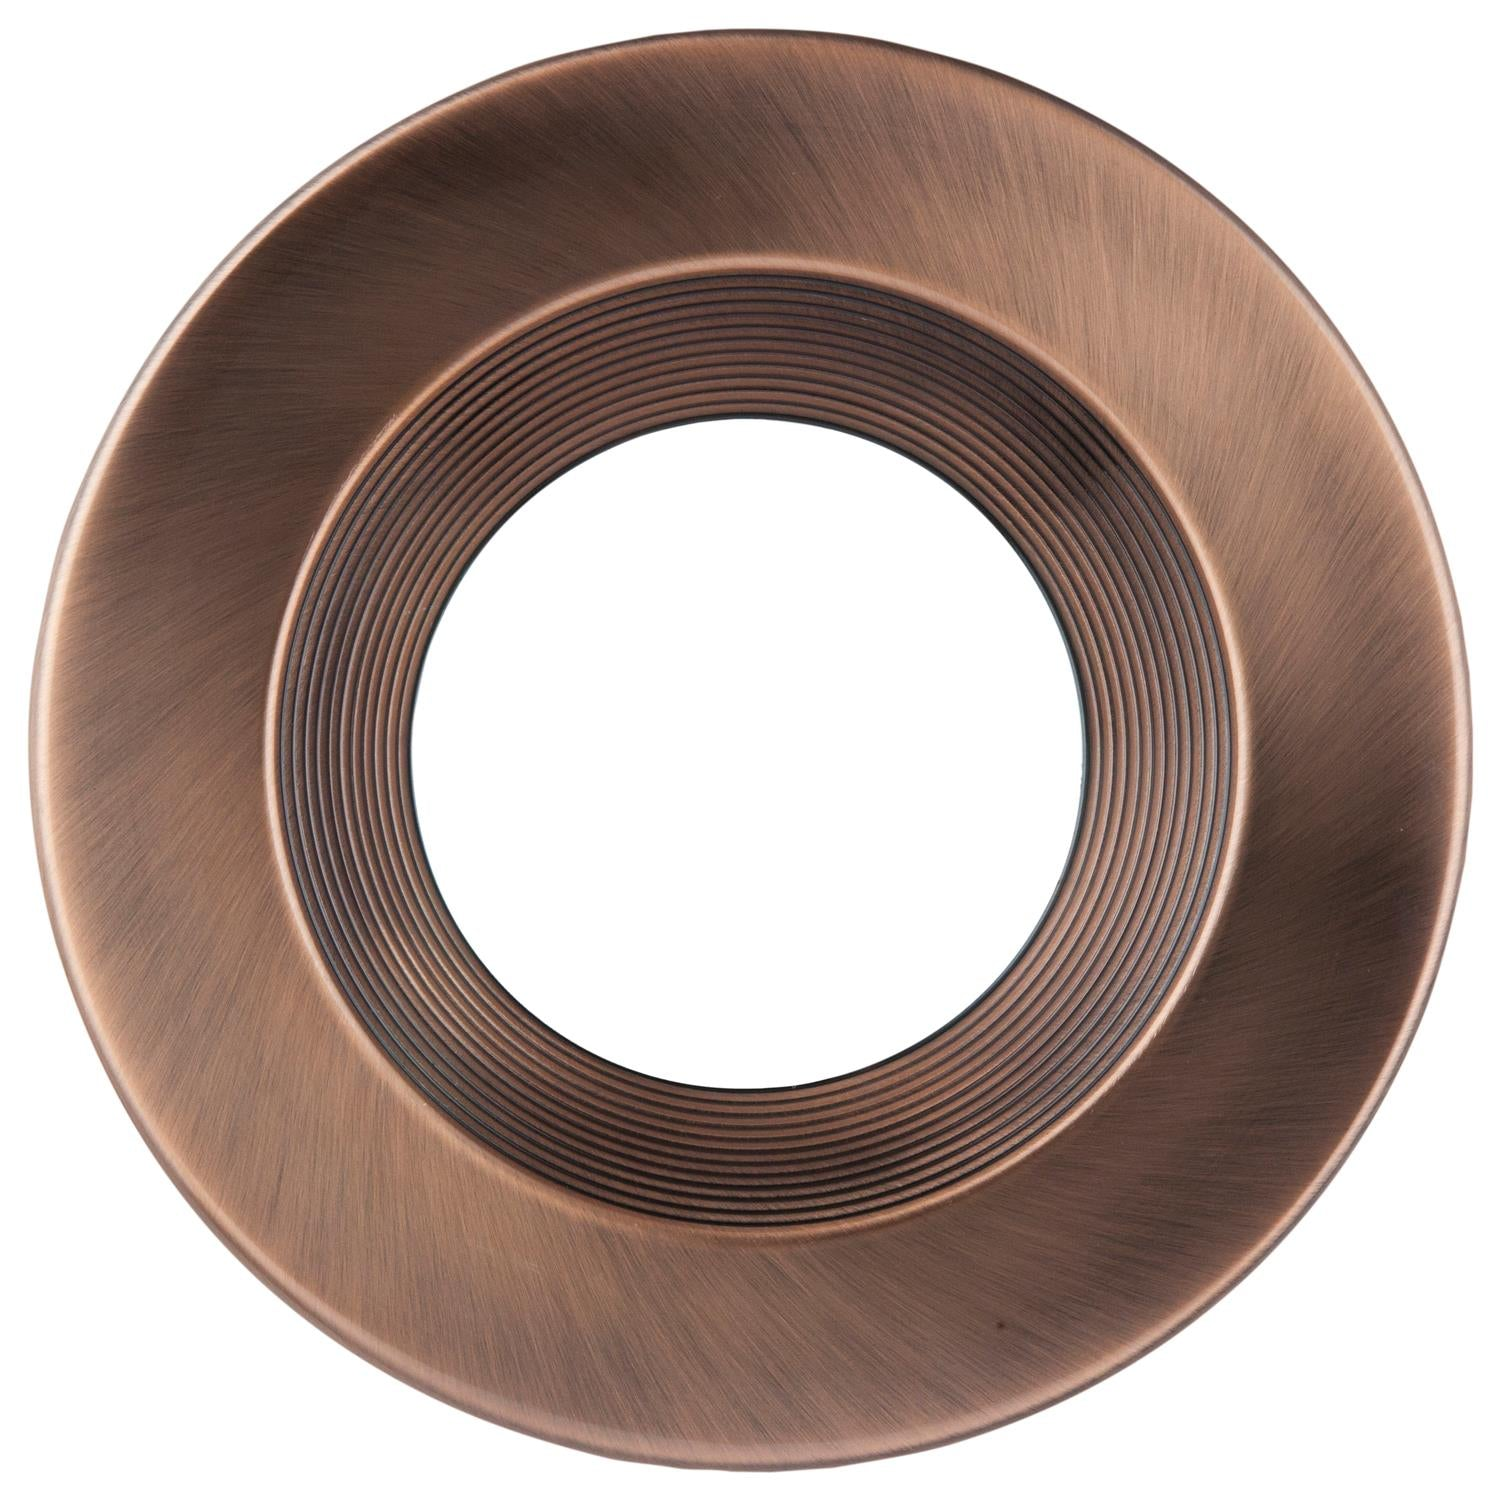 "SUNLITE 6"" Round LED Trim Retrofit Fixture, Bronze Finish"